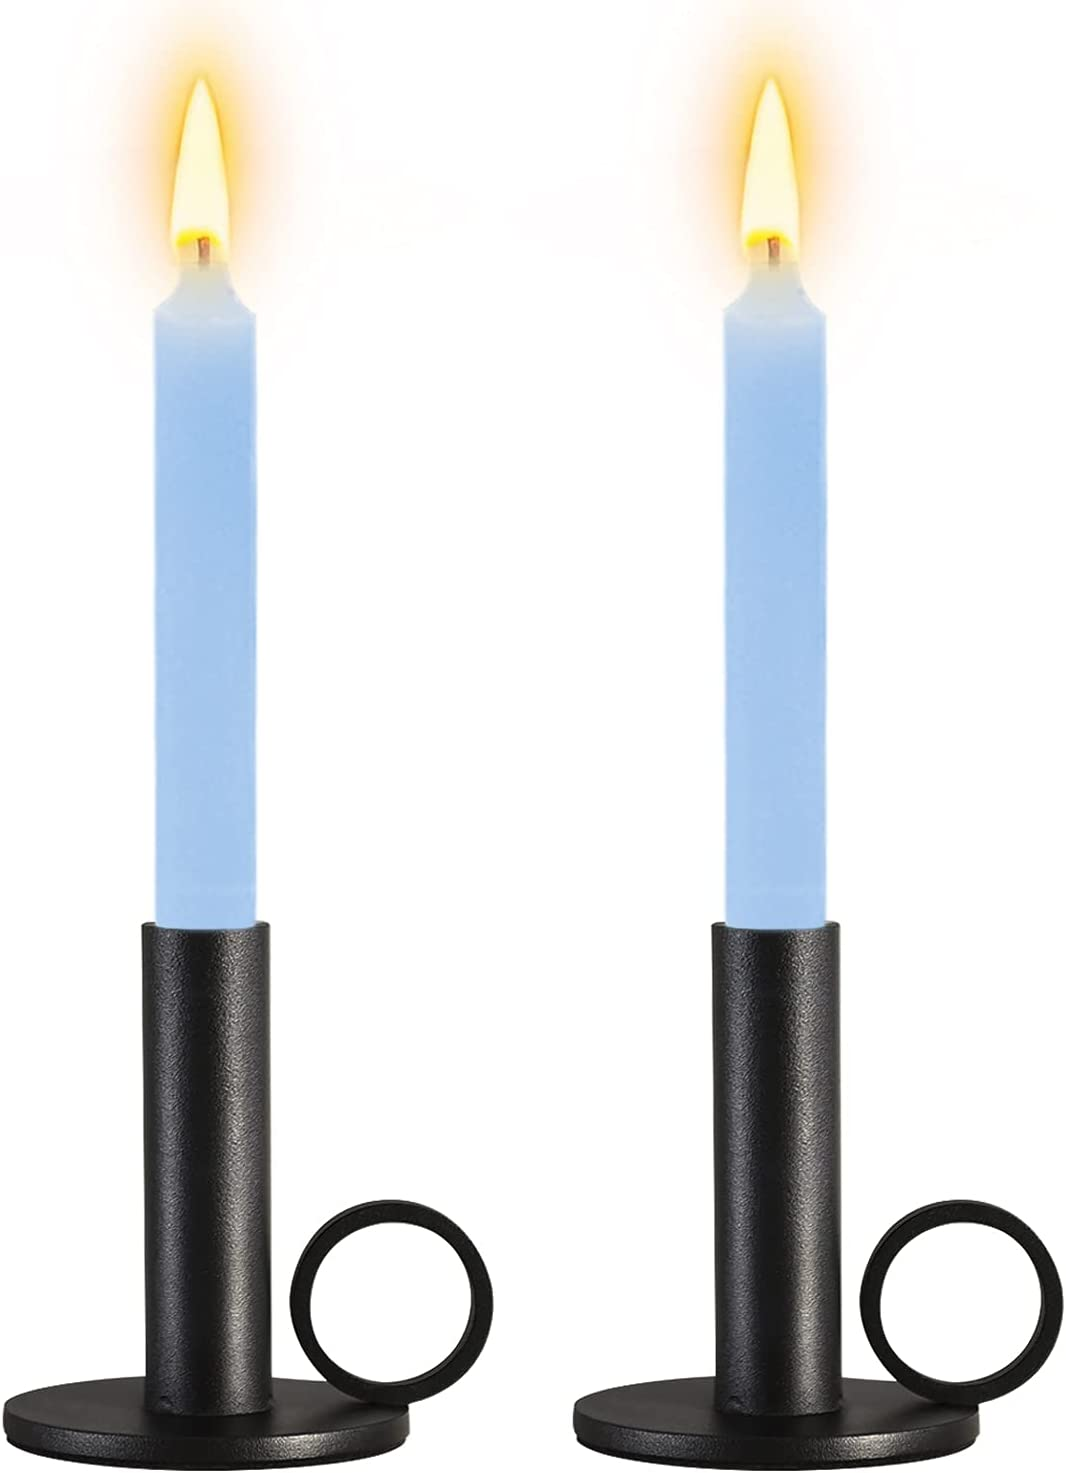 Candlestick Holders, Set of 2 Matte Black Candle Holders Set, Decorative Metal Candle Stands for Taper Candles, Fits 3/4 inch Thick Candle & Led Candles, Ideal Home Decor for Wedding, Dinning, Party